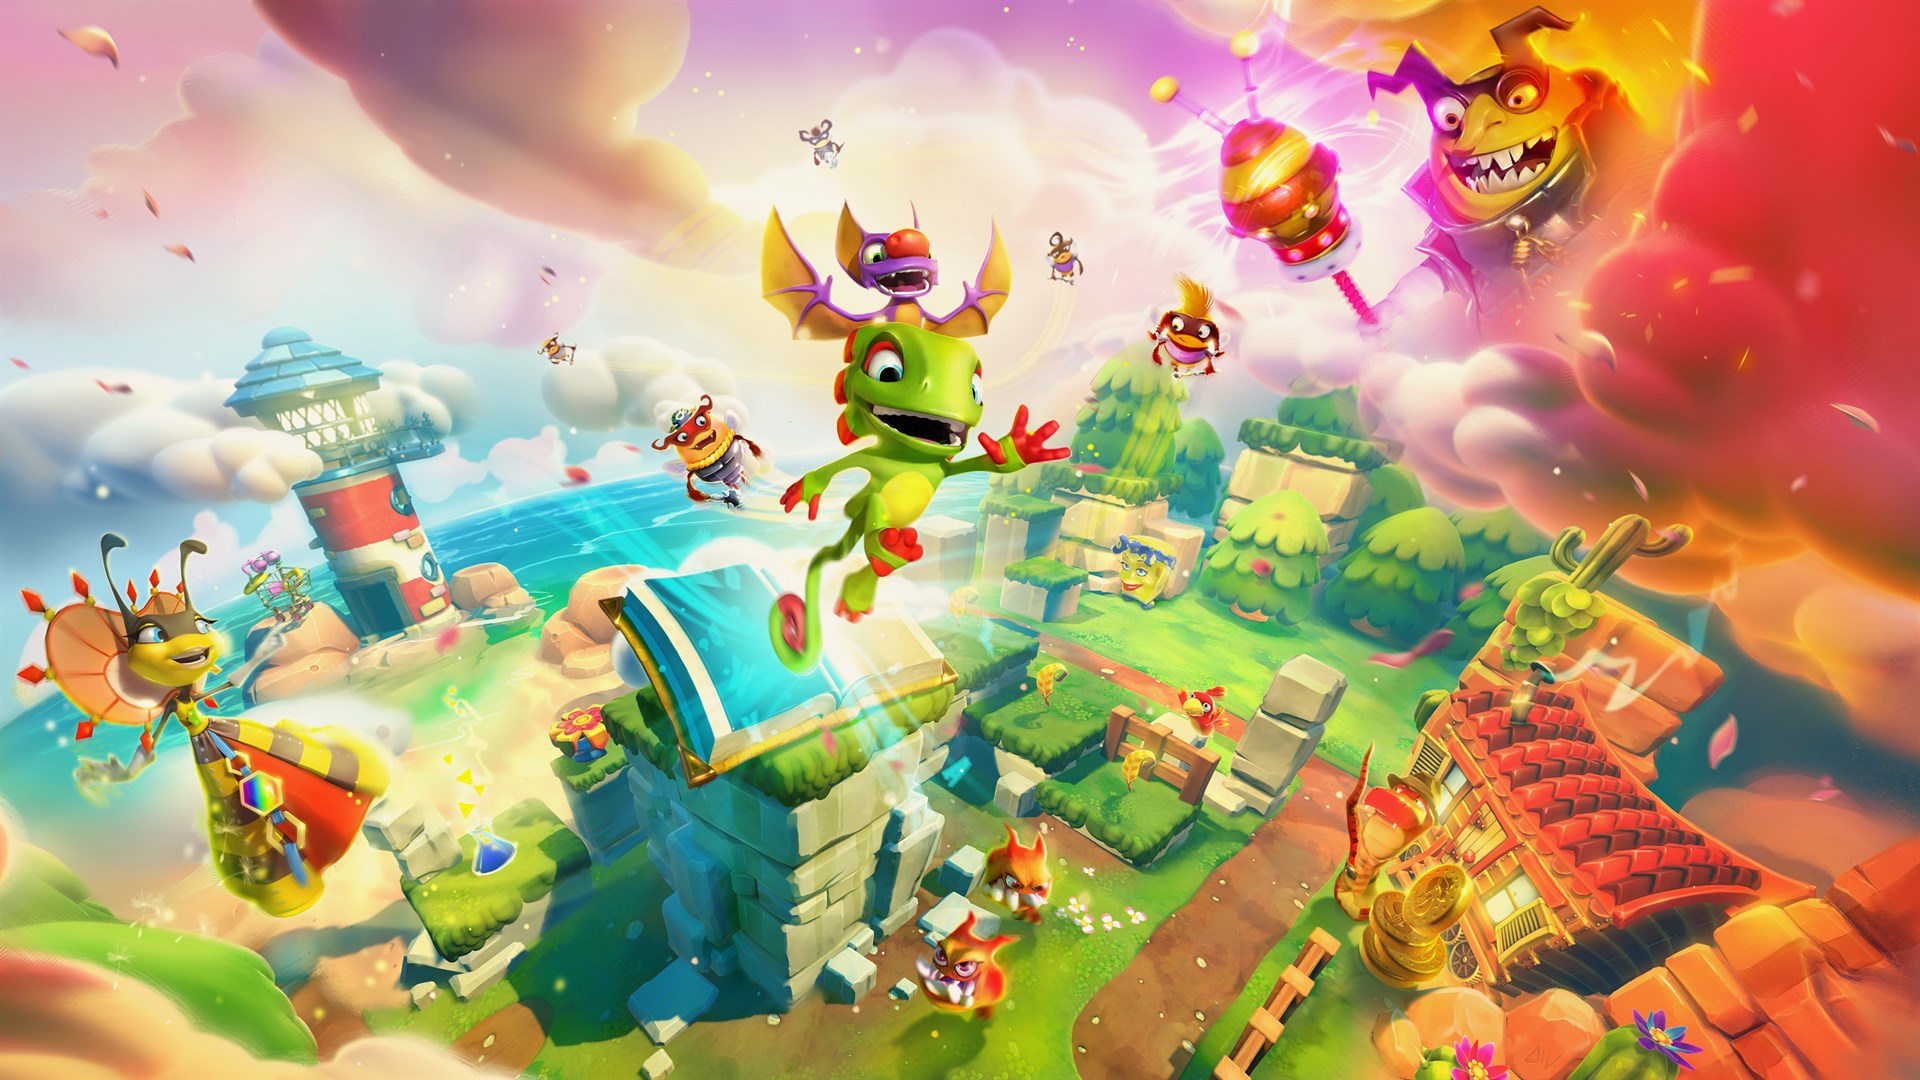 Yooka Laylee and the Impossible Lair [Switch Review]